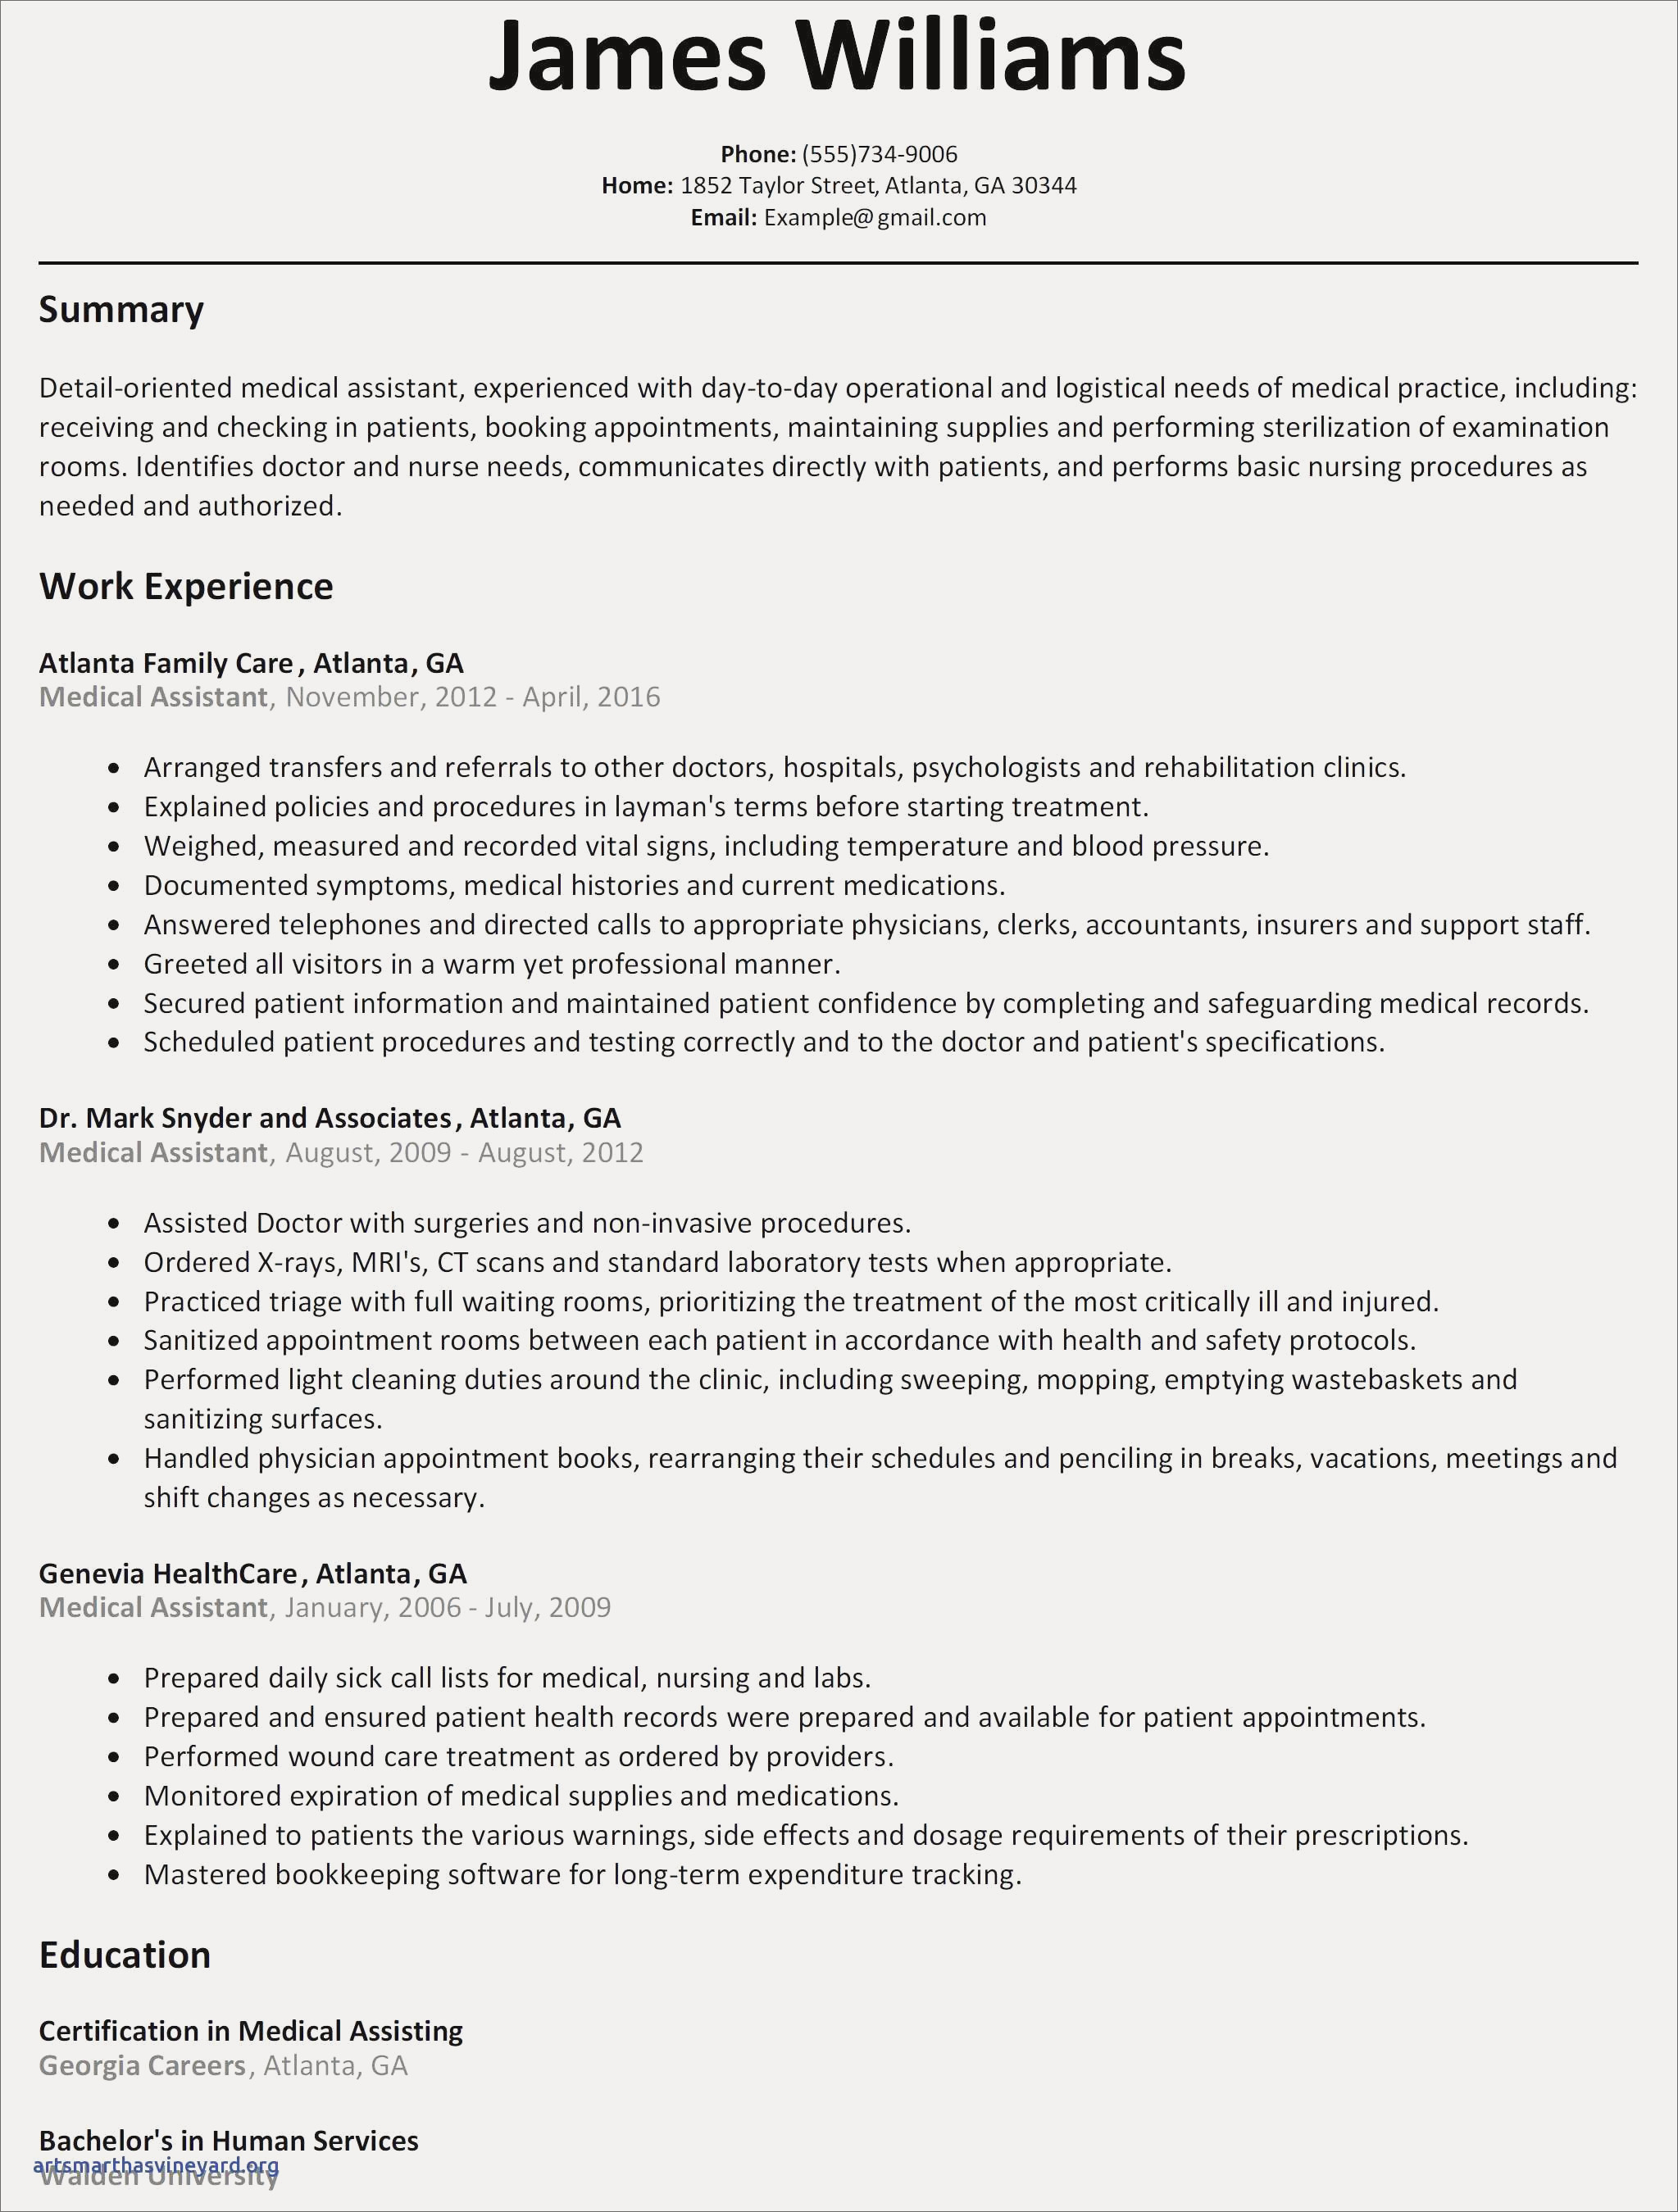 Retail Customer Service Resume - Resume Examples for Retail Best Customer Service Resume Examples